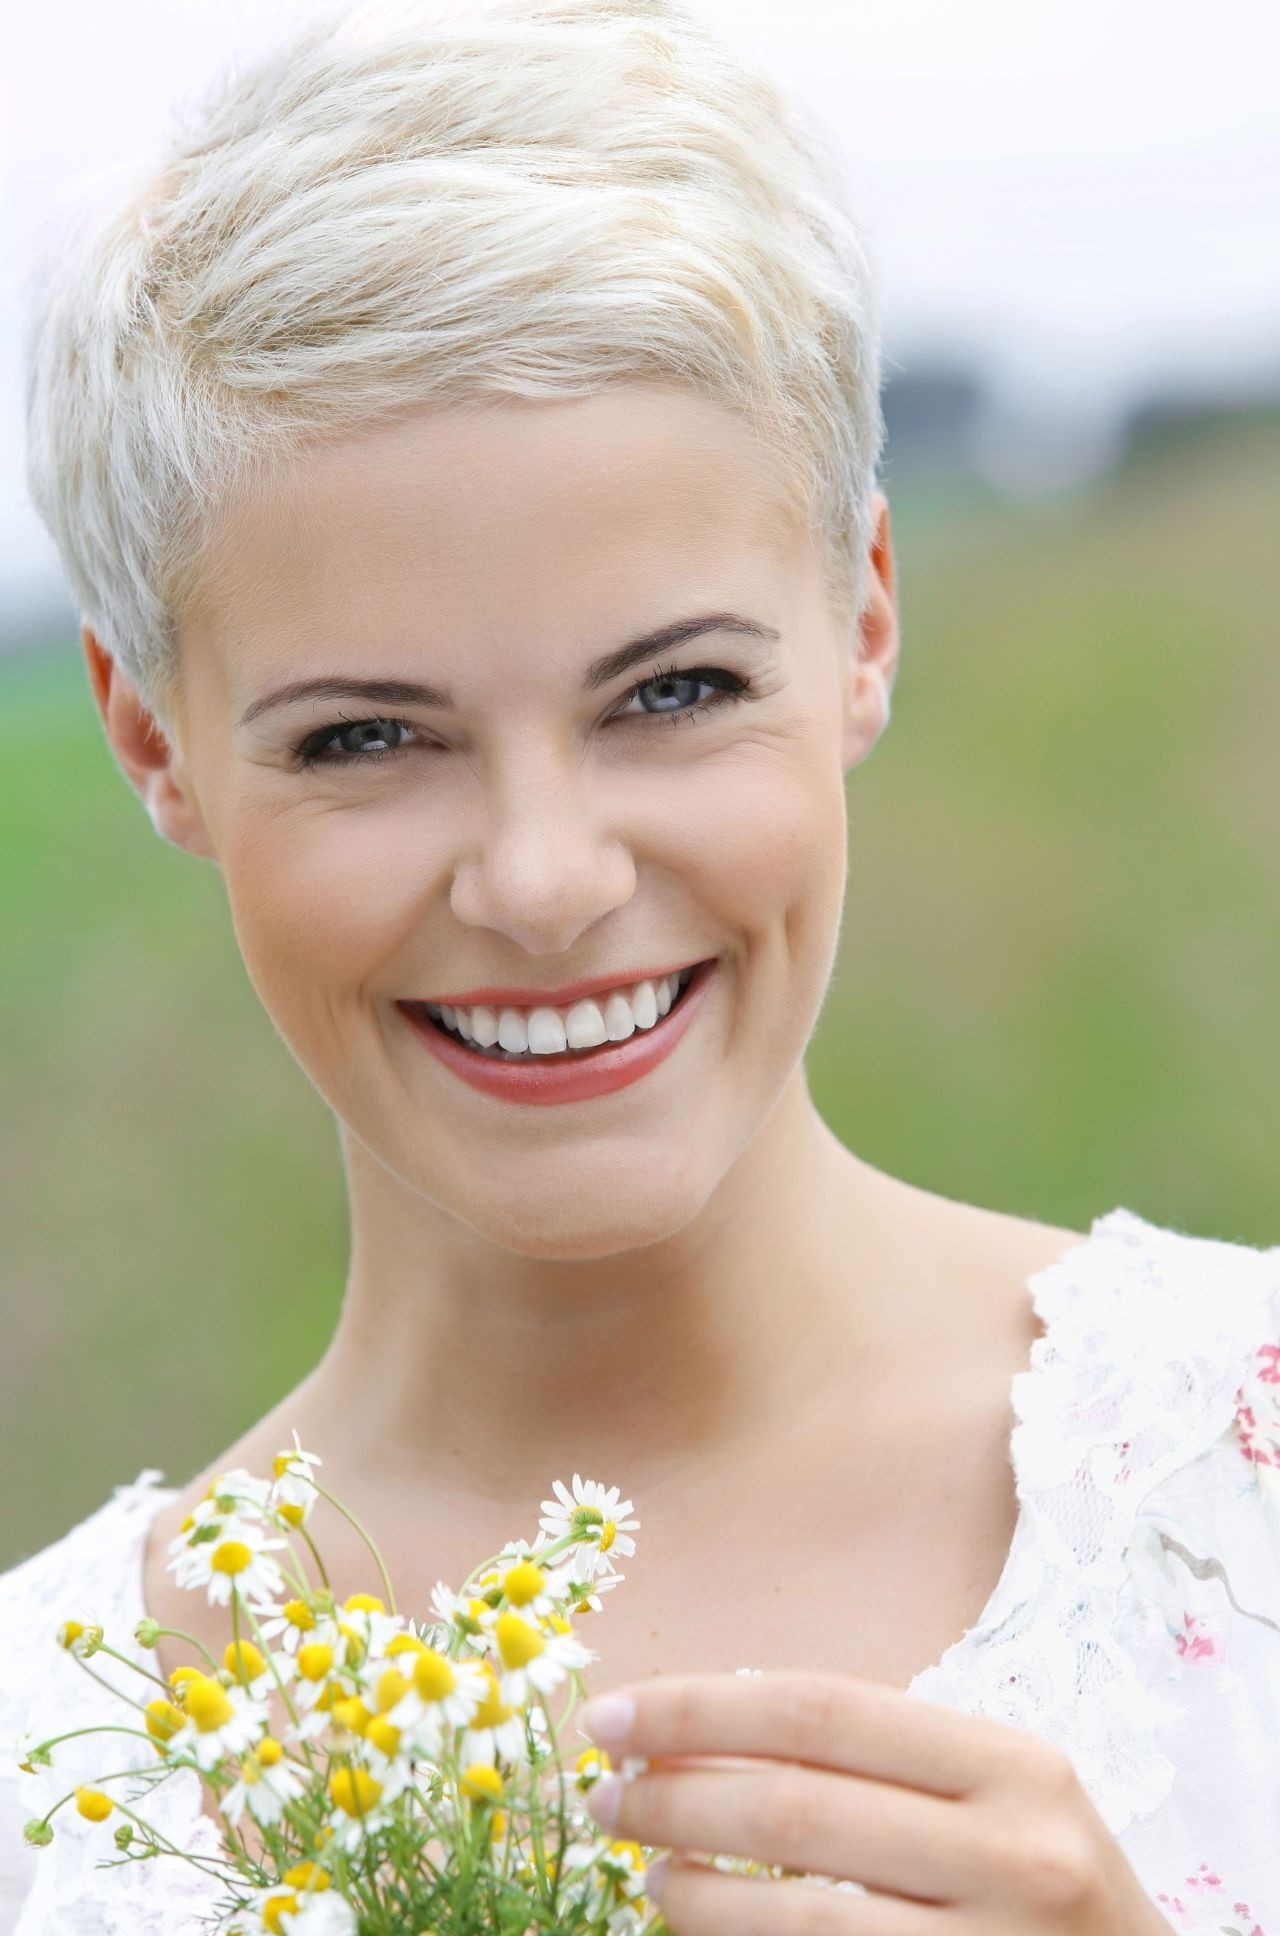 Short Blonde Crop Hairstyles – Hairstyle For Women & Man Regarding Most Current Extremely Short Pixie Hairstyles (View 7 of 15)